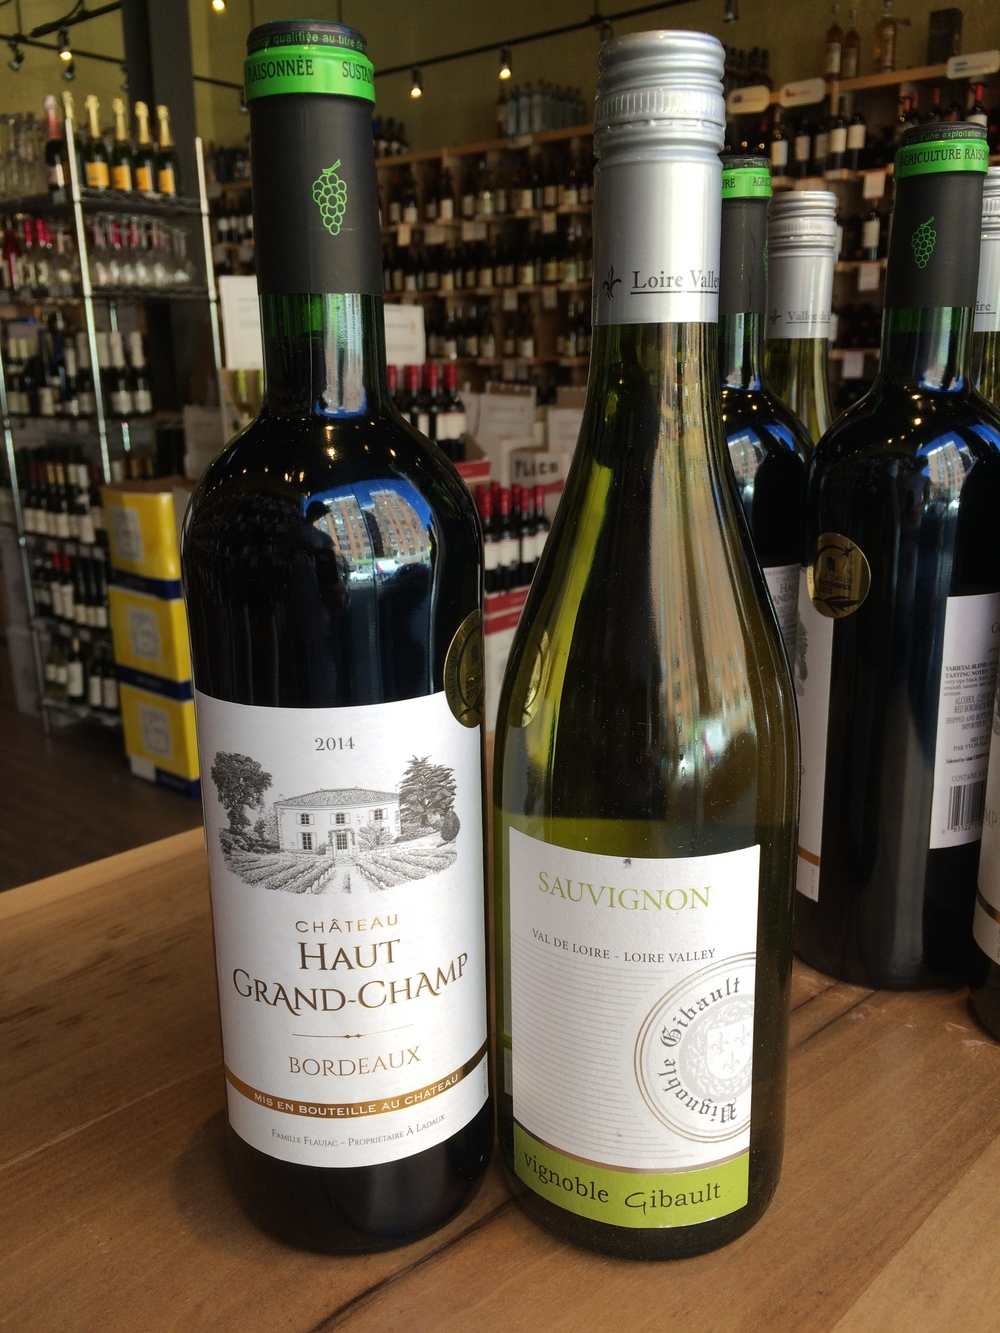 2014 Chateau Haut Grand-Champ and 2014 Vignoble Gibault Sauvignon